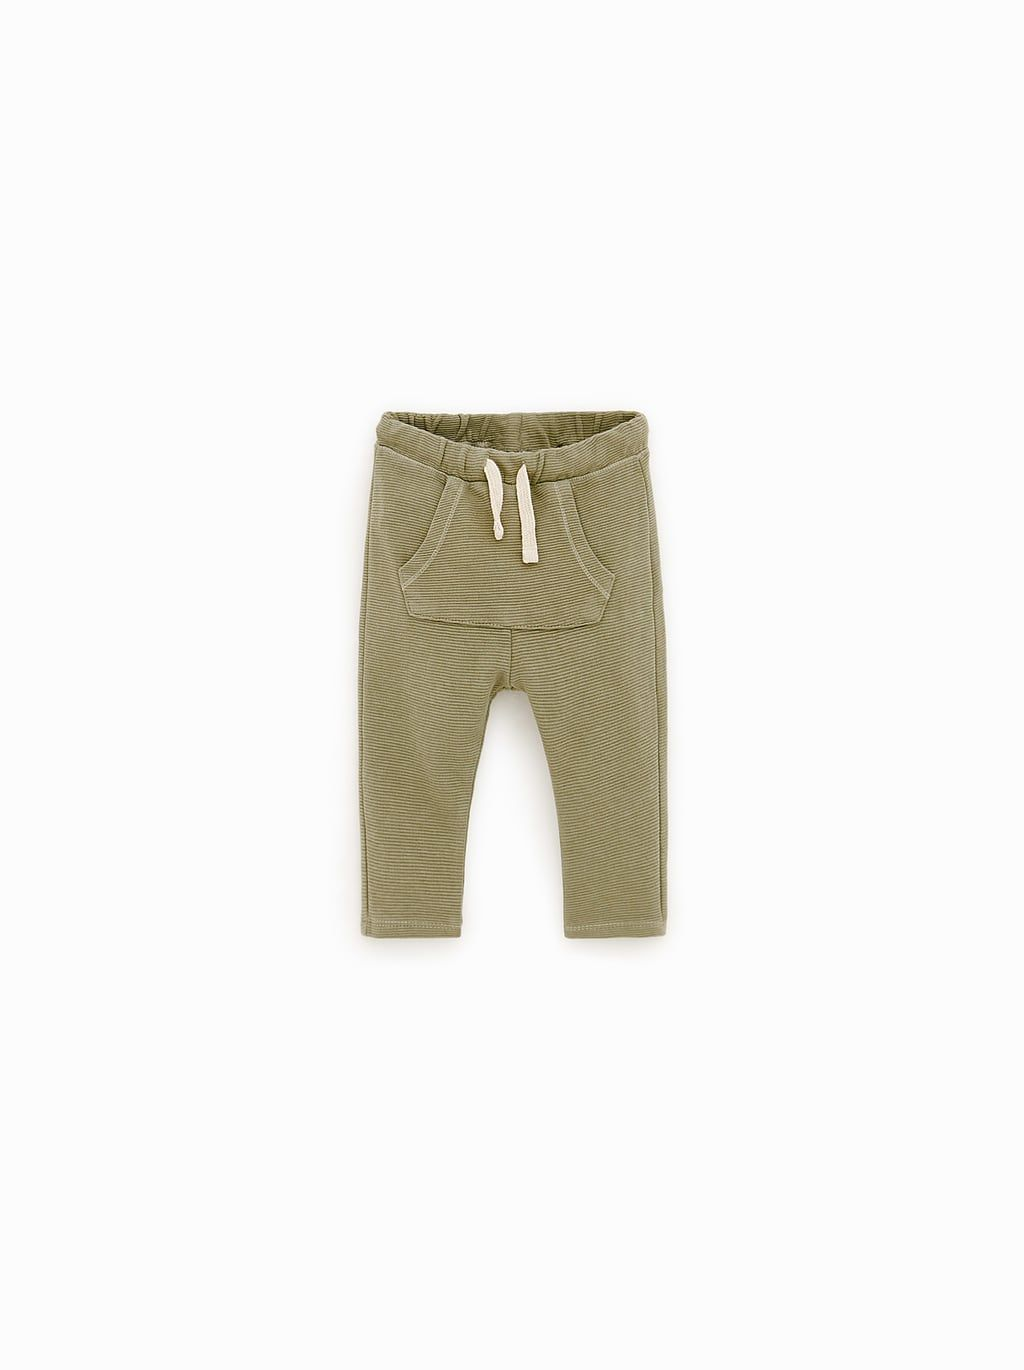 125bed12b7 Image 1 of PATCH POCKET HAREM PANTS from Zara